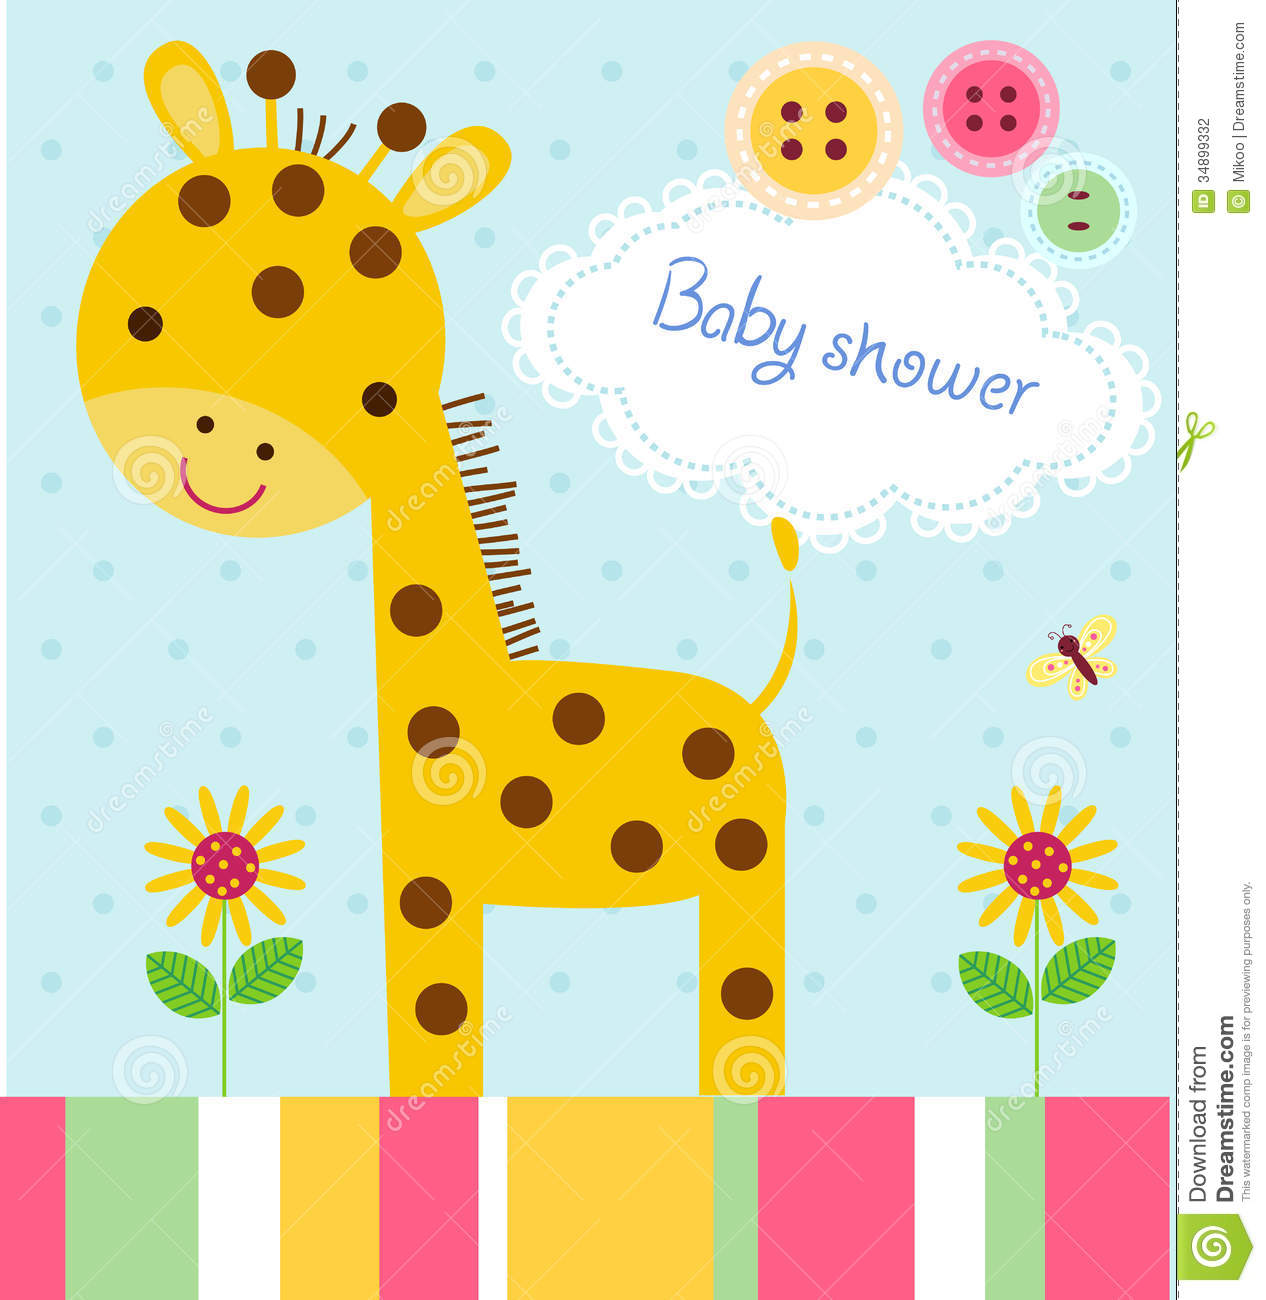 Baby Shower Card Stock Photography - Image: 34899332